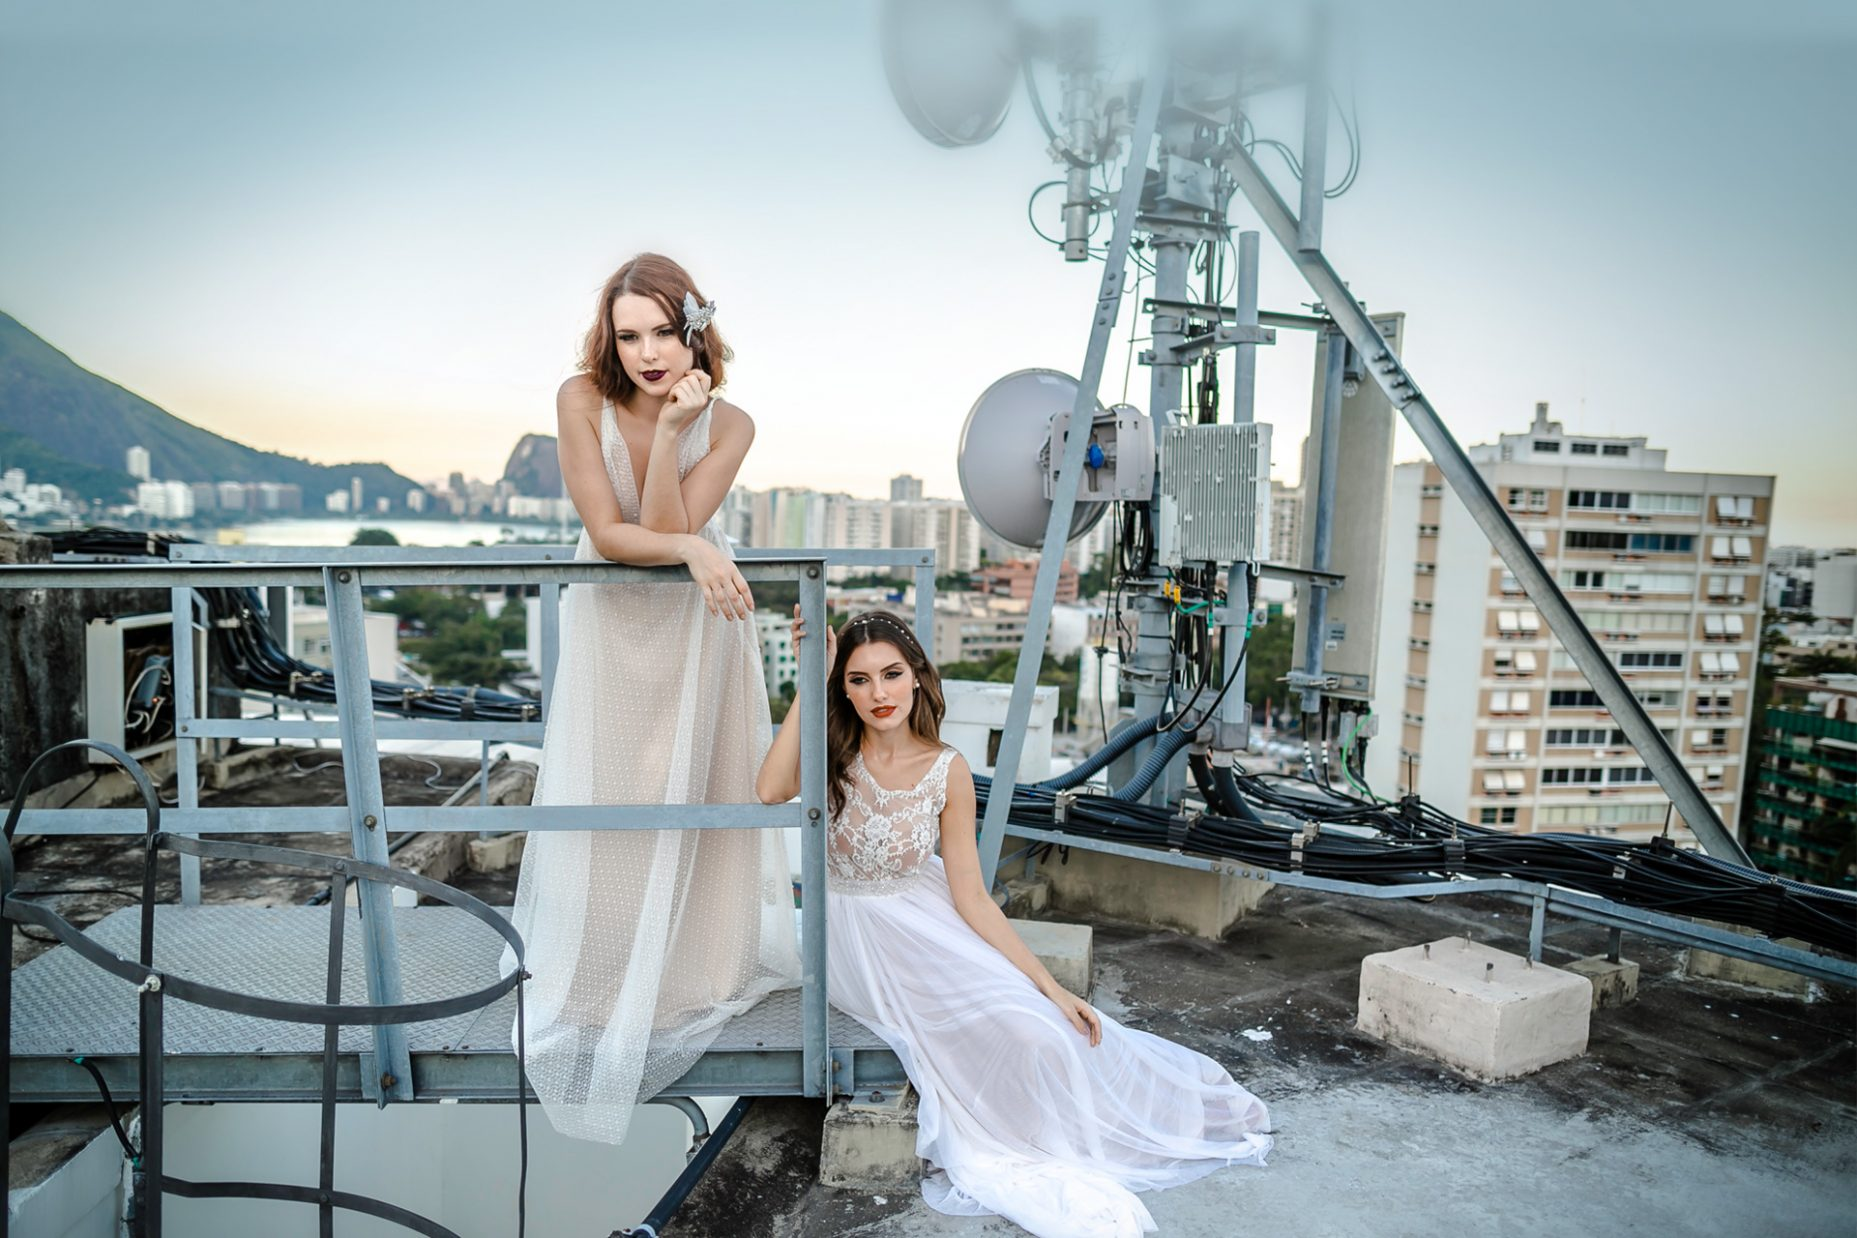 Atelier_fafi_vasconcellos_editorial_rooftop_noivas_sharon_eve_smith_giselly_goncalves_7_v2